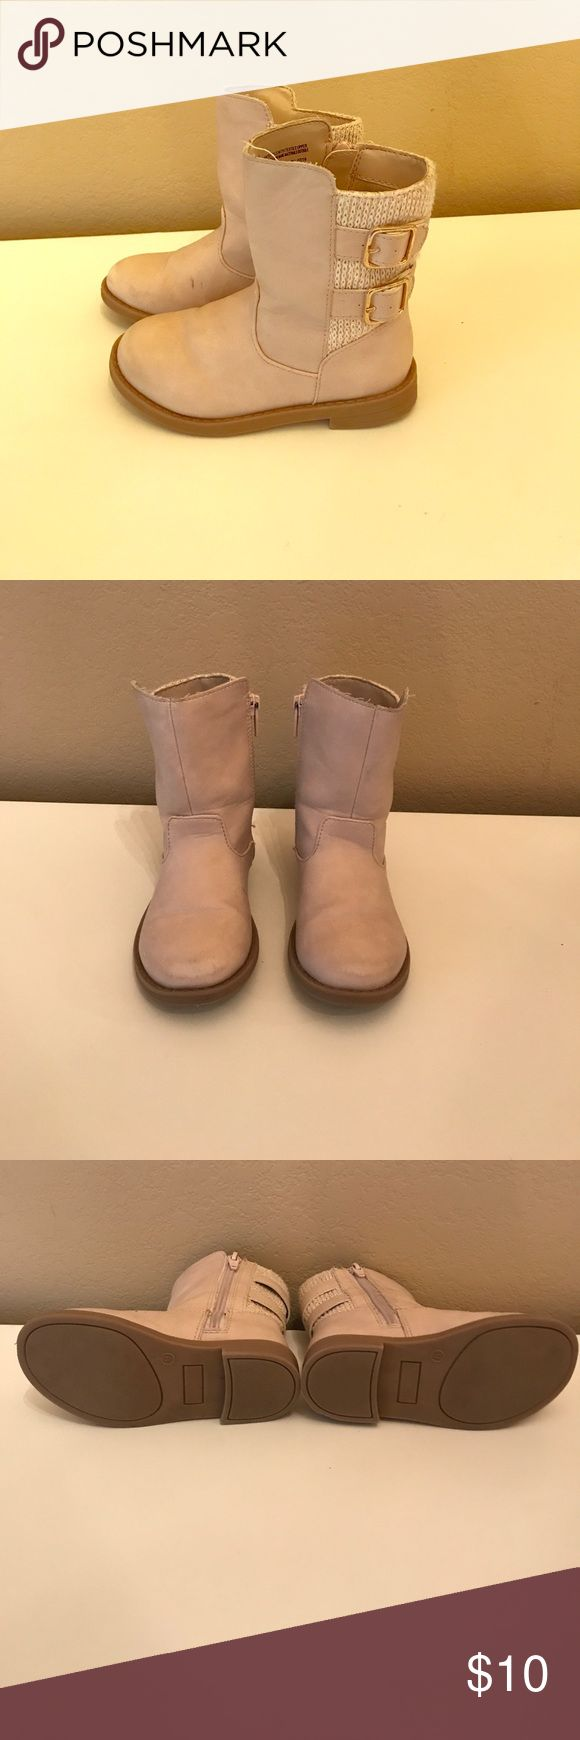 Toddler girl's Target boots Very light pink. Back material has sparkles in it. Toes are slightly worn. Small pen mark on right boot. Shoes Boots